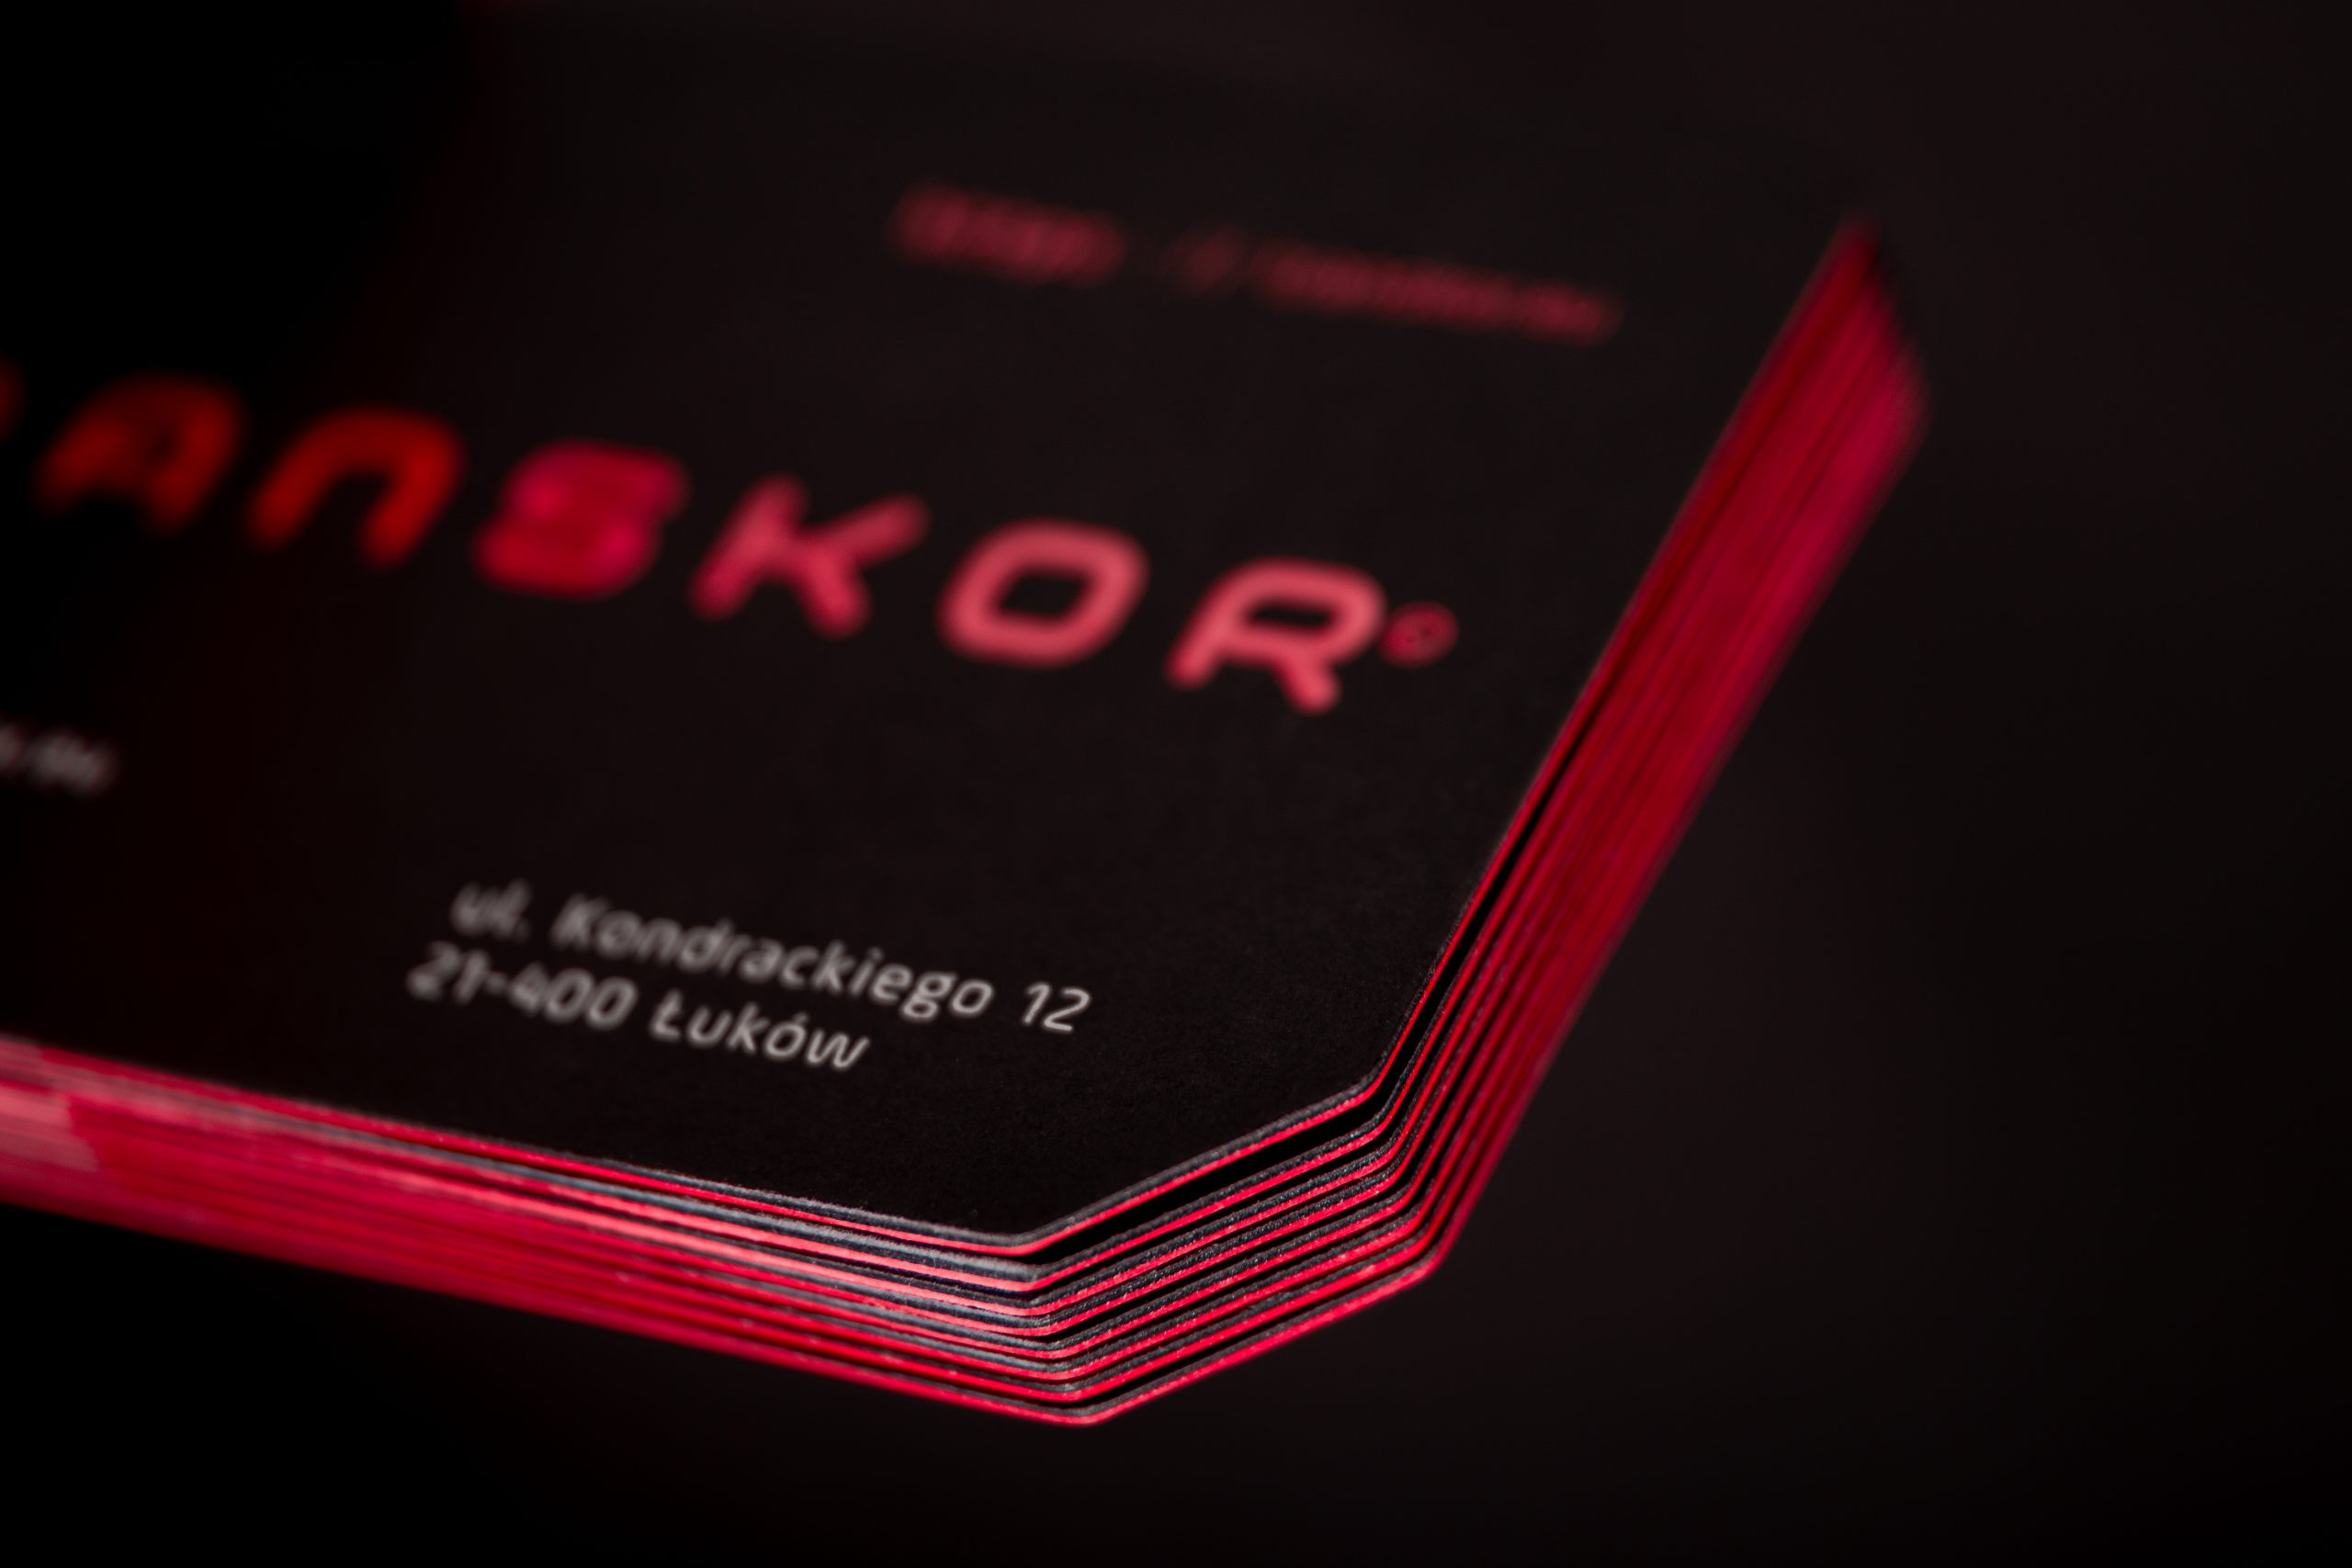 Transkor business card_cut out